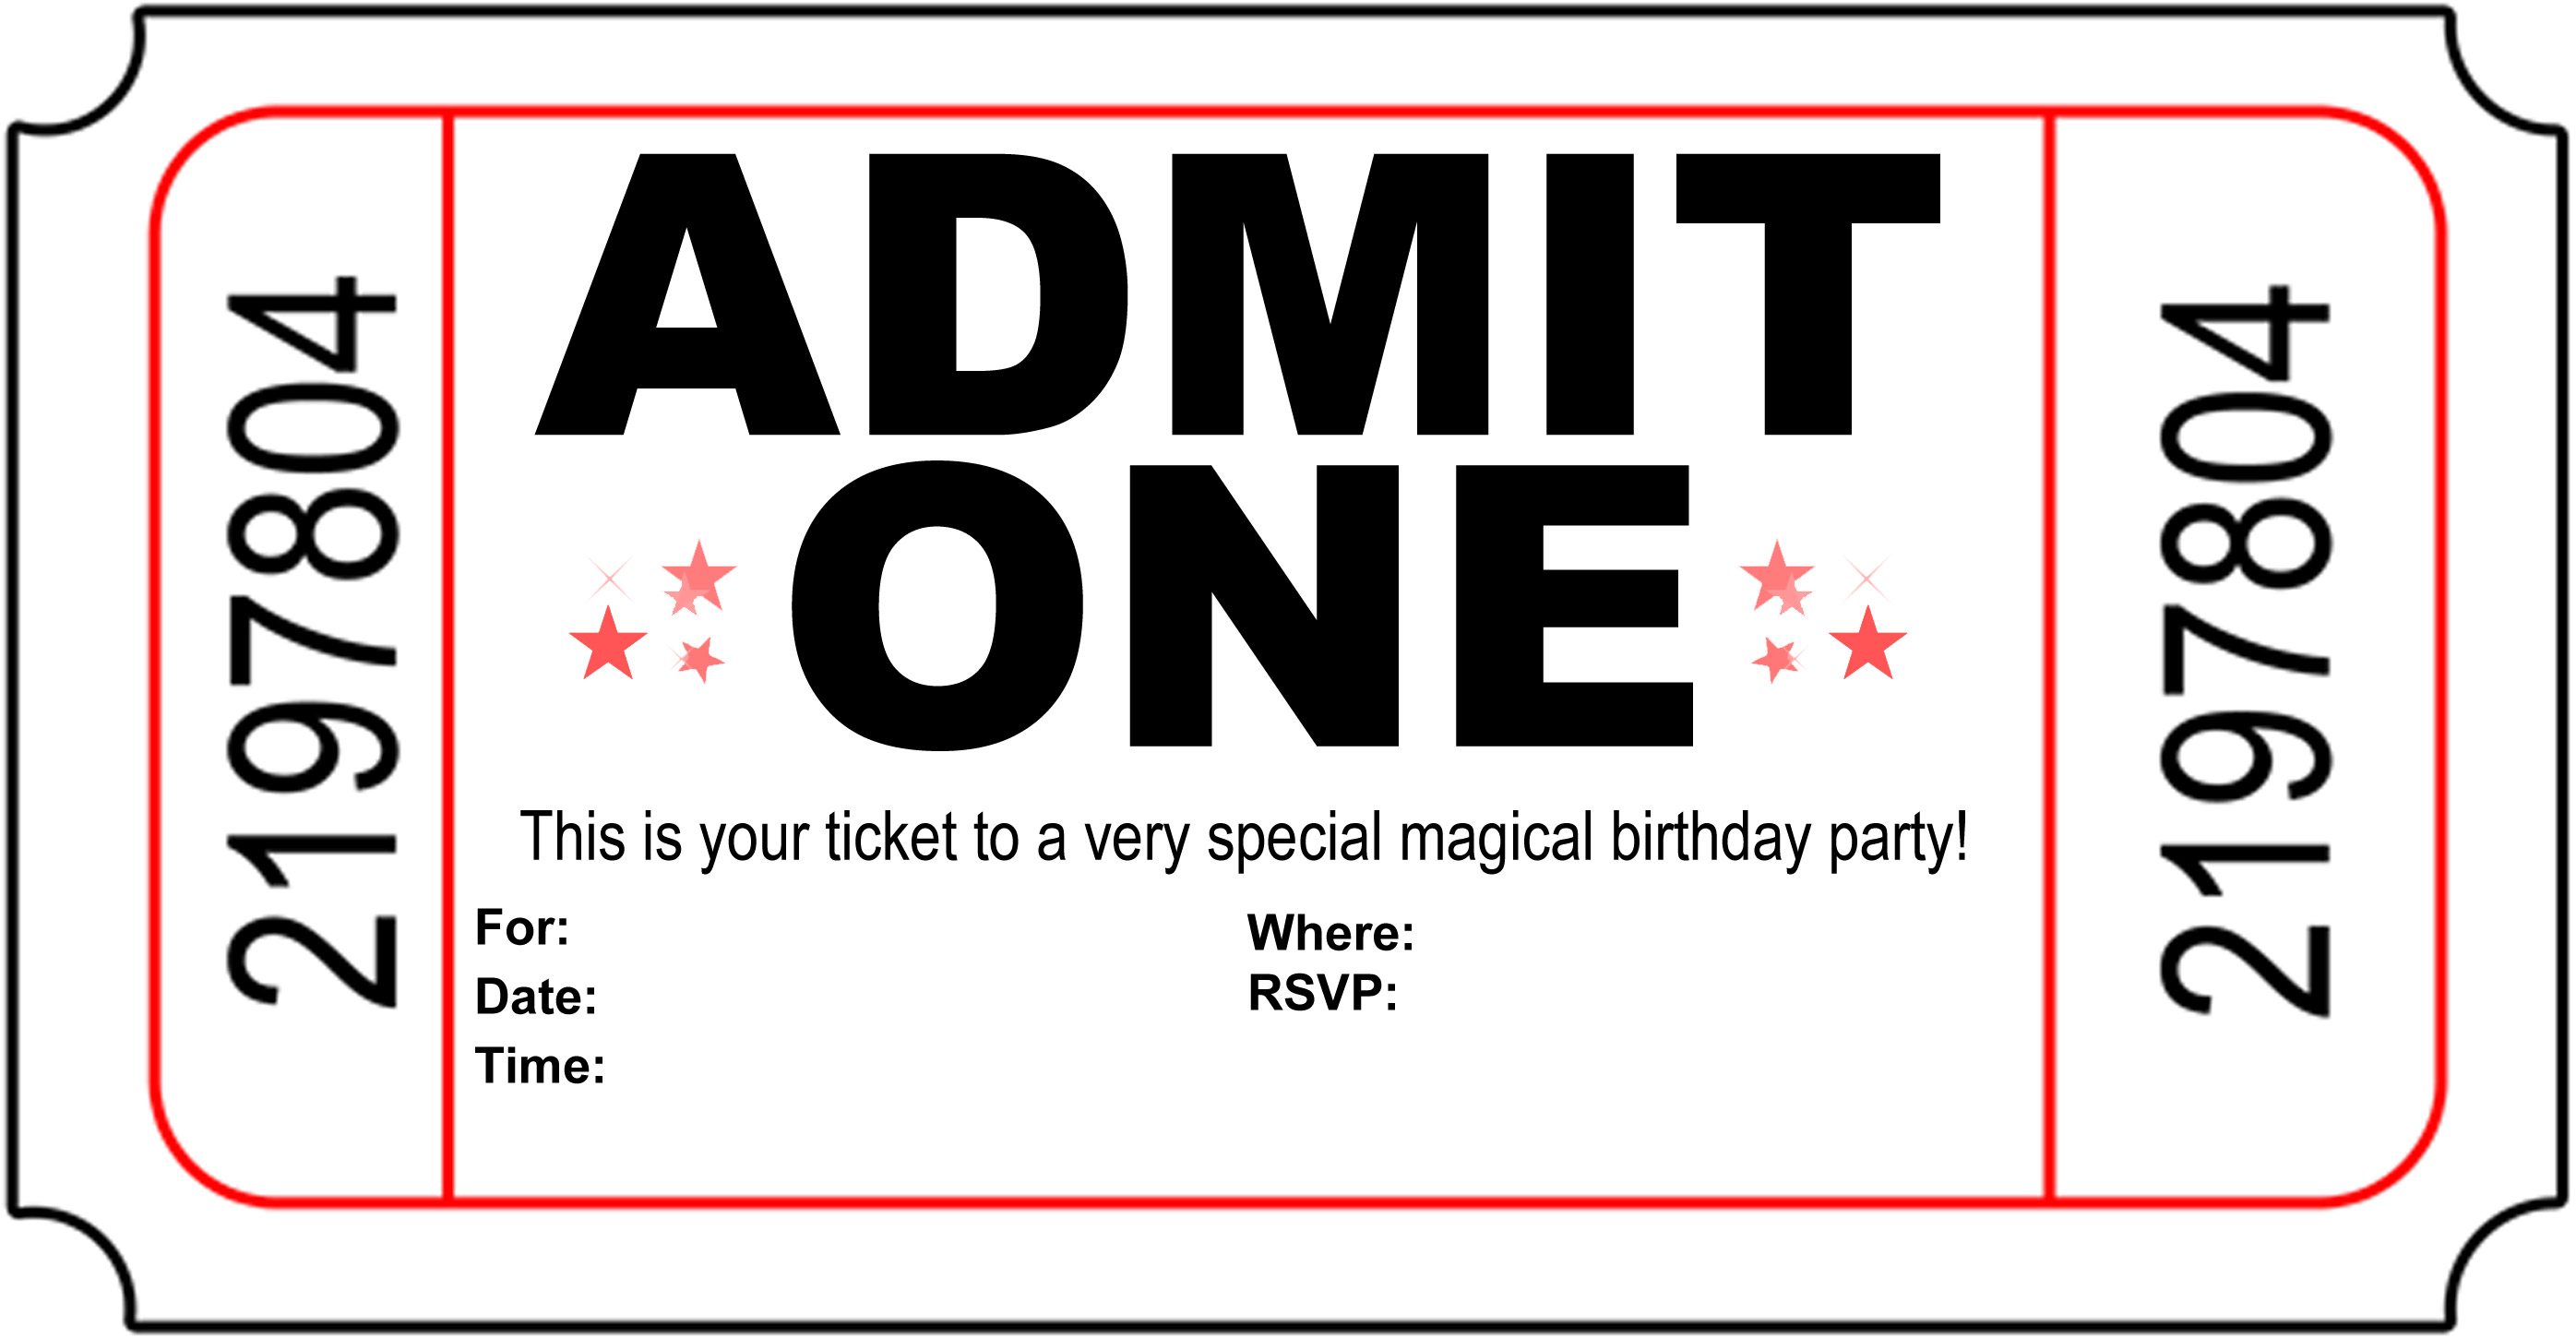 Carnival ticket invitation template for Ticket invitation template free